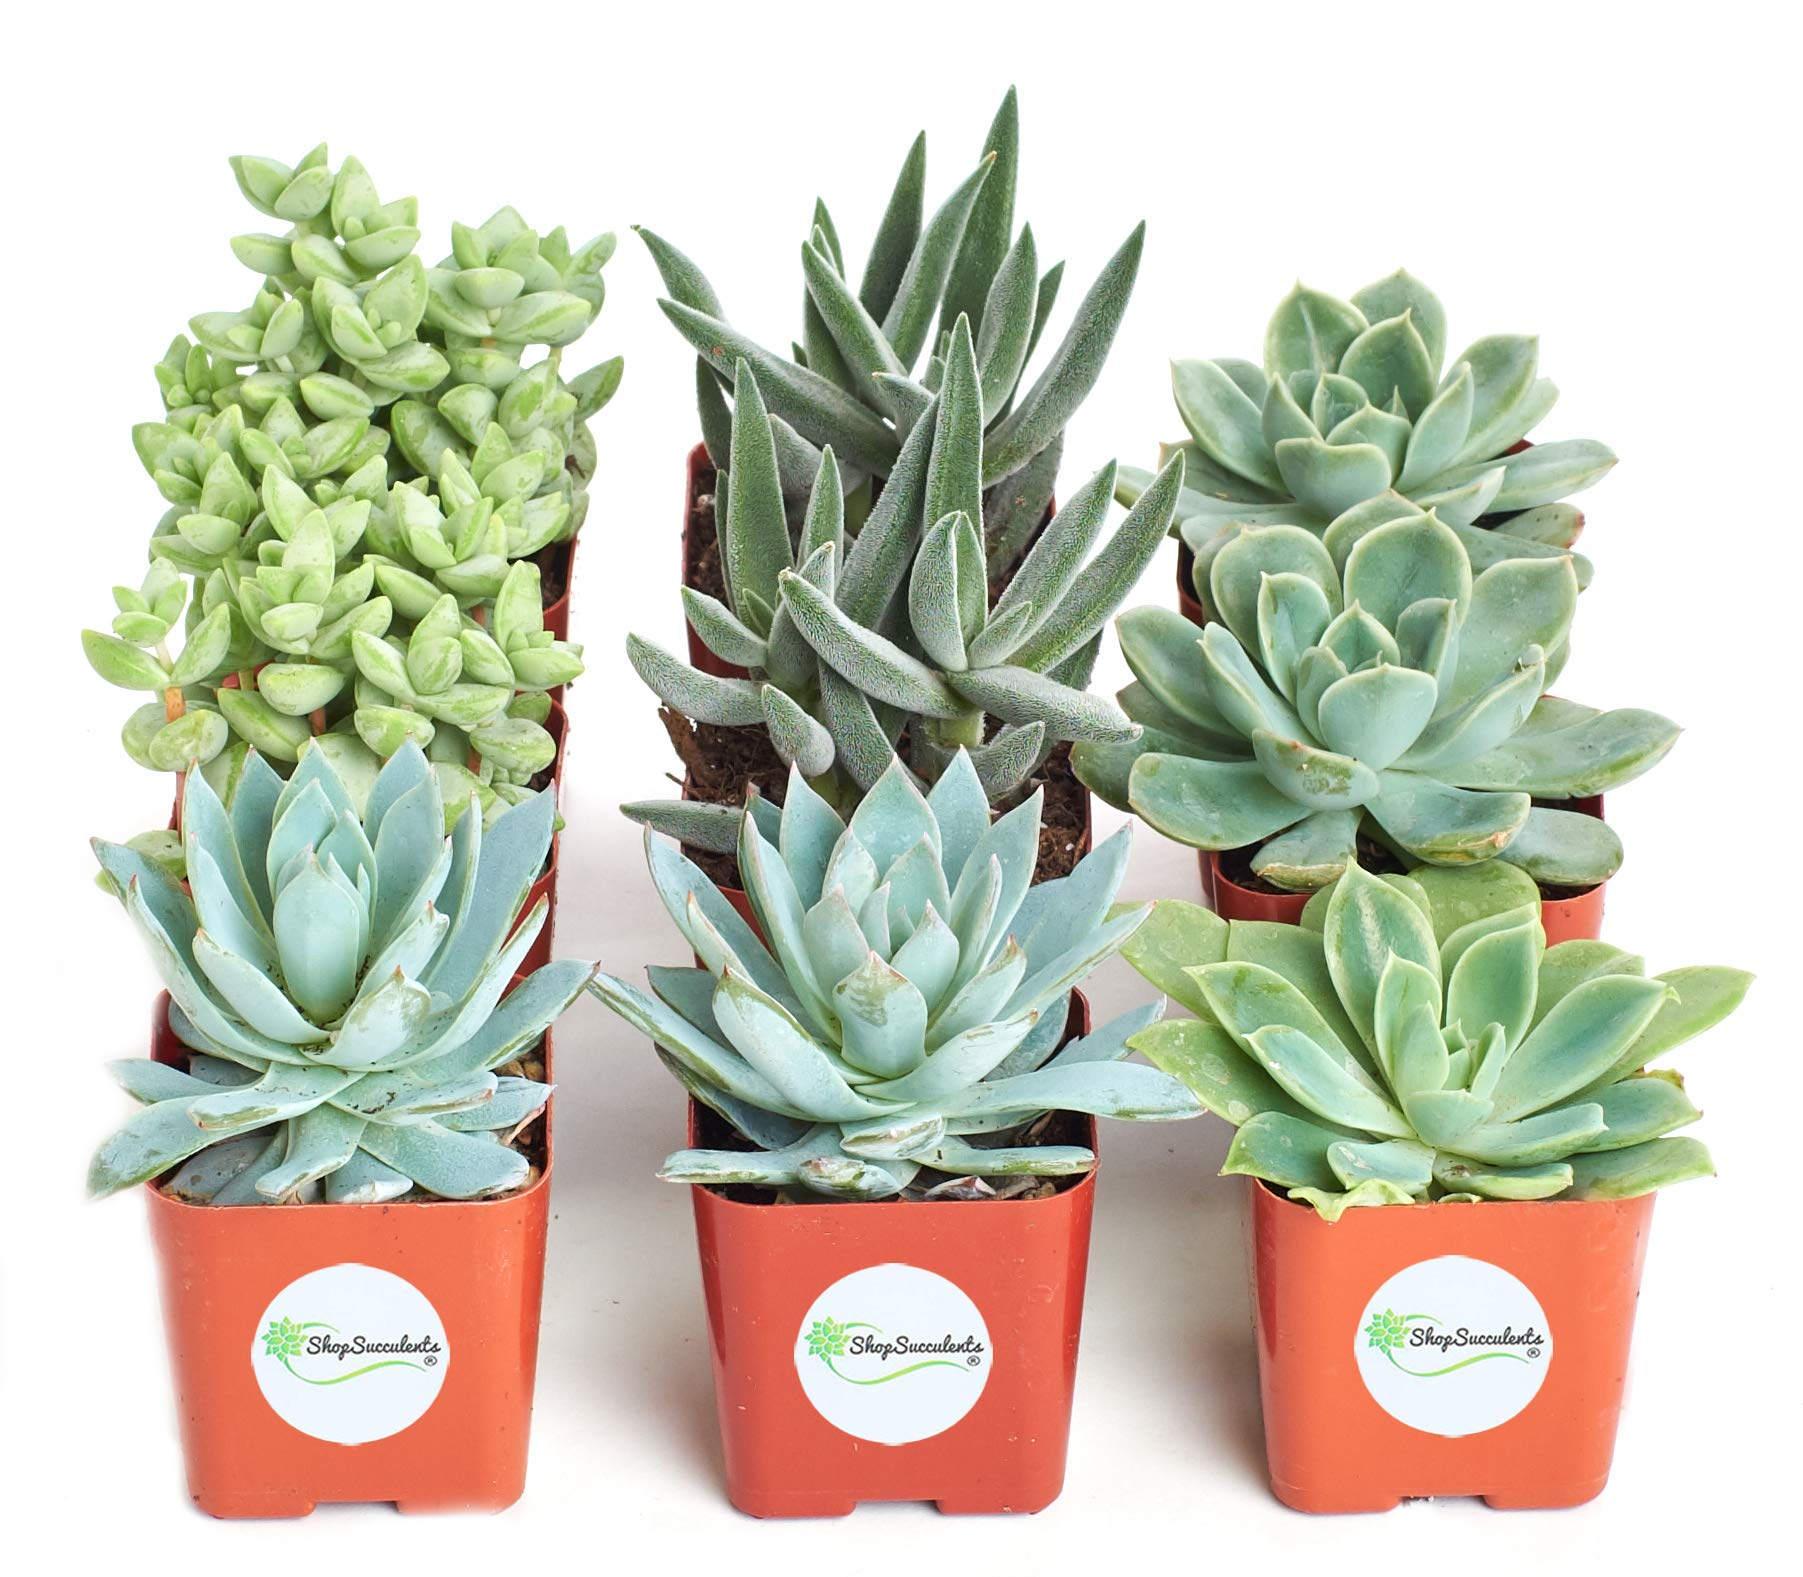 Shop Succulents | Blue/Green Live Plants, Hand Selected Variety Pack of Succulents | | Collection of 9 in 2'' pots, Pack of 9